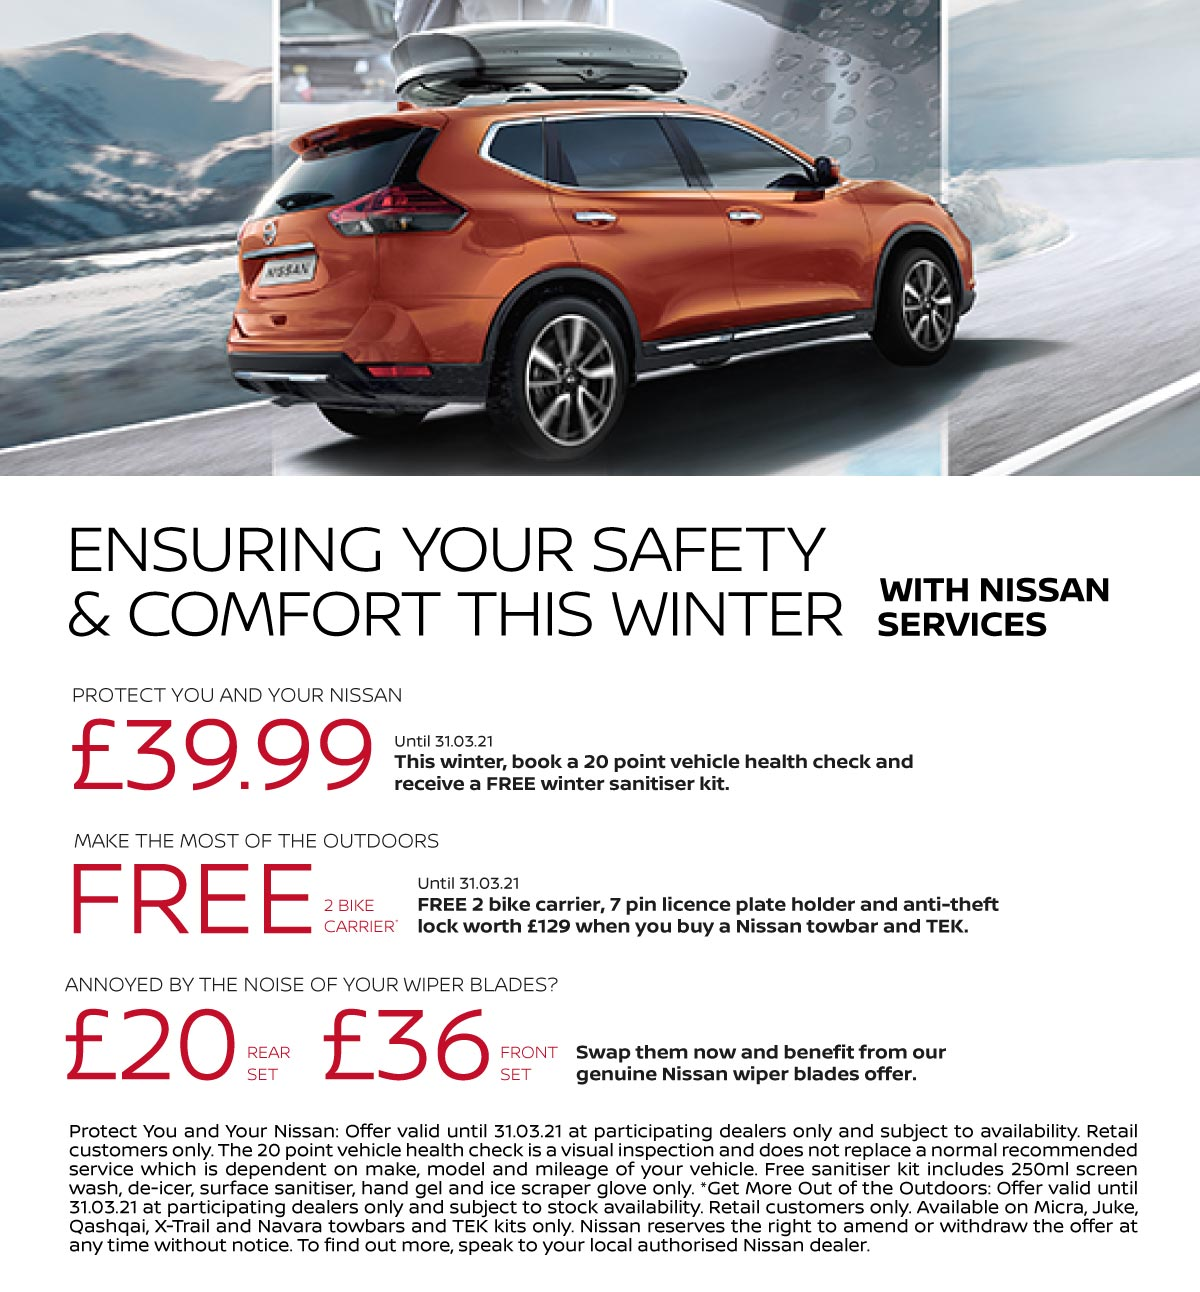 Nissan Winter Services